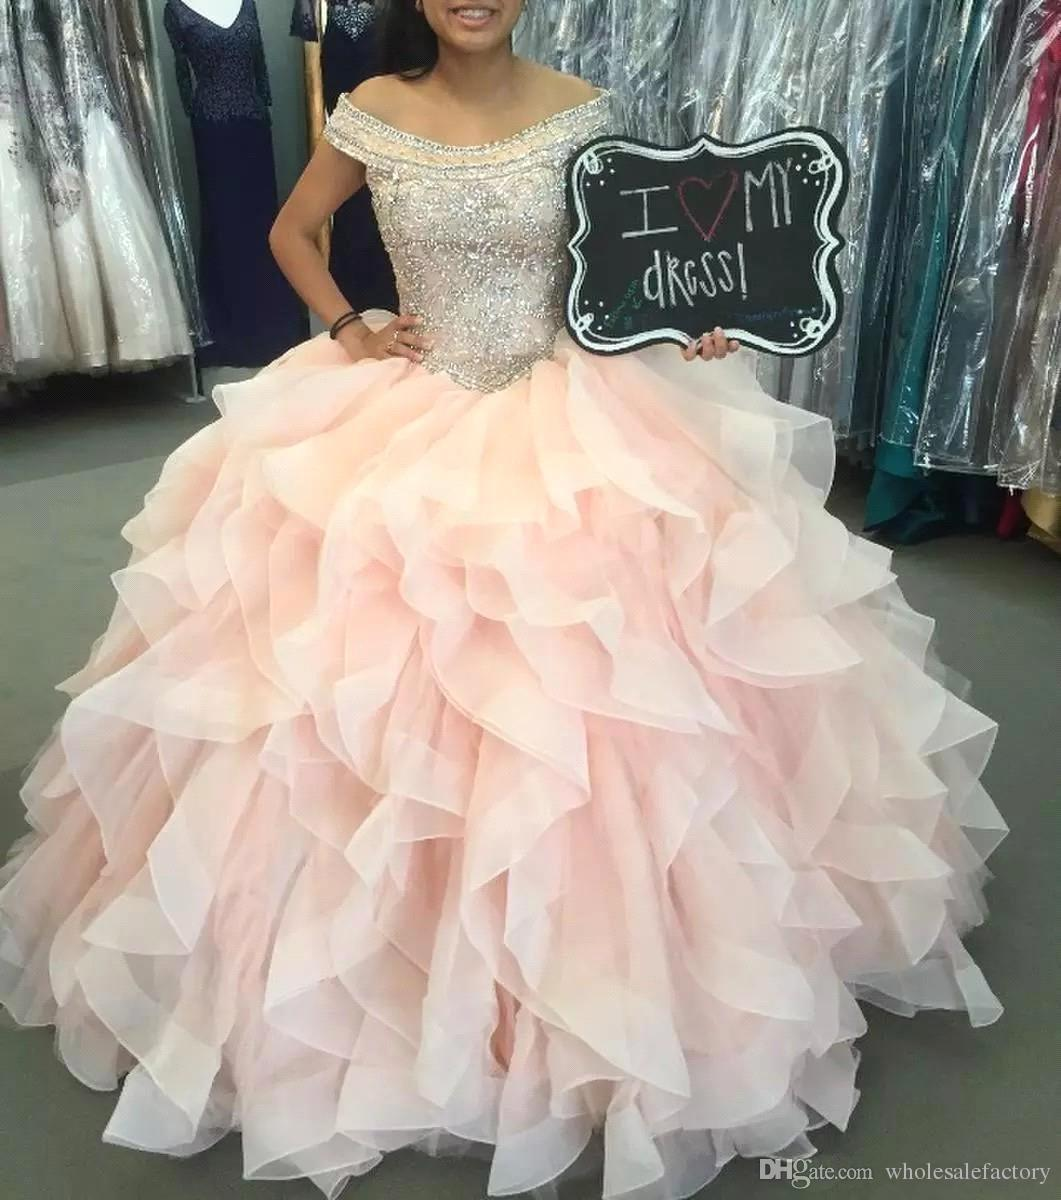 2019 Scoop Neck Organza Ball Gowns Quinceanera Dresses Beaded Stones Top Layered Ruffles Floor Length Prom Dresses BC1922